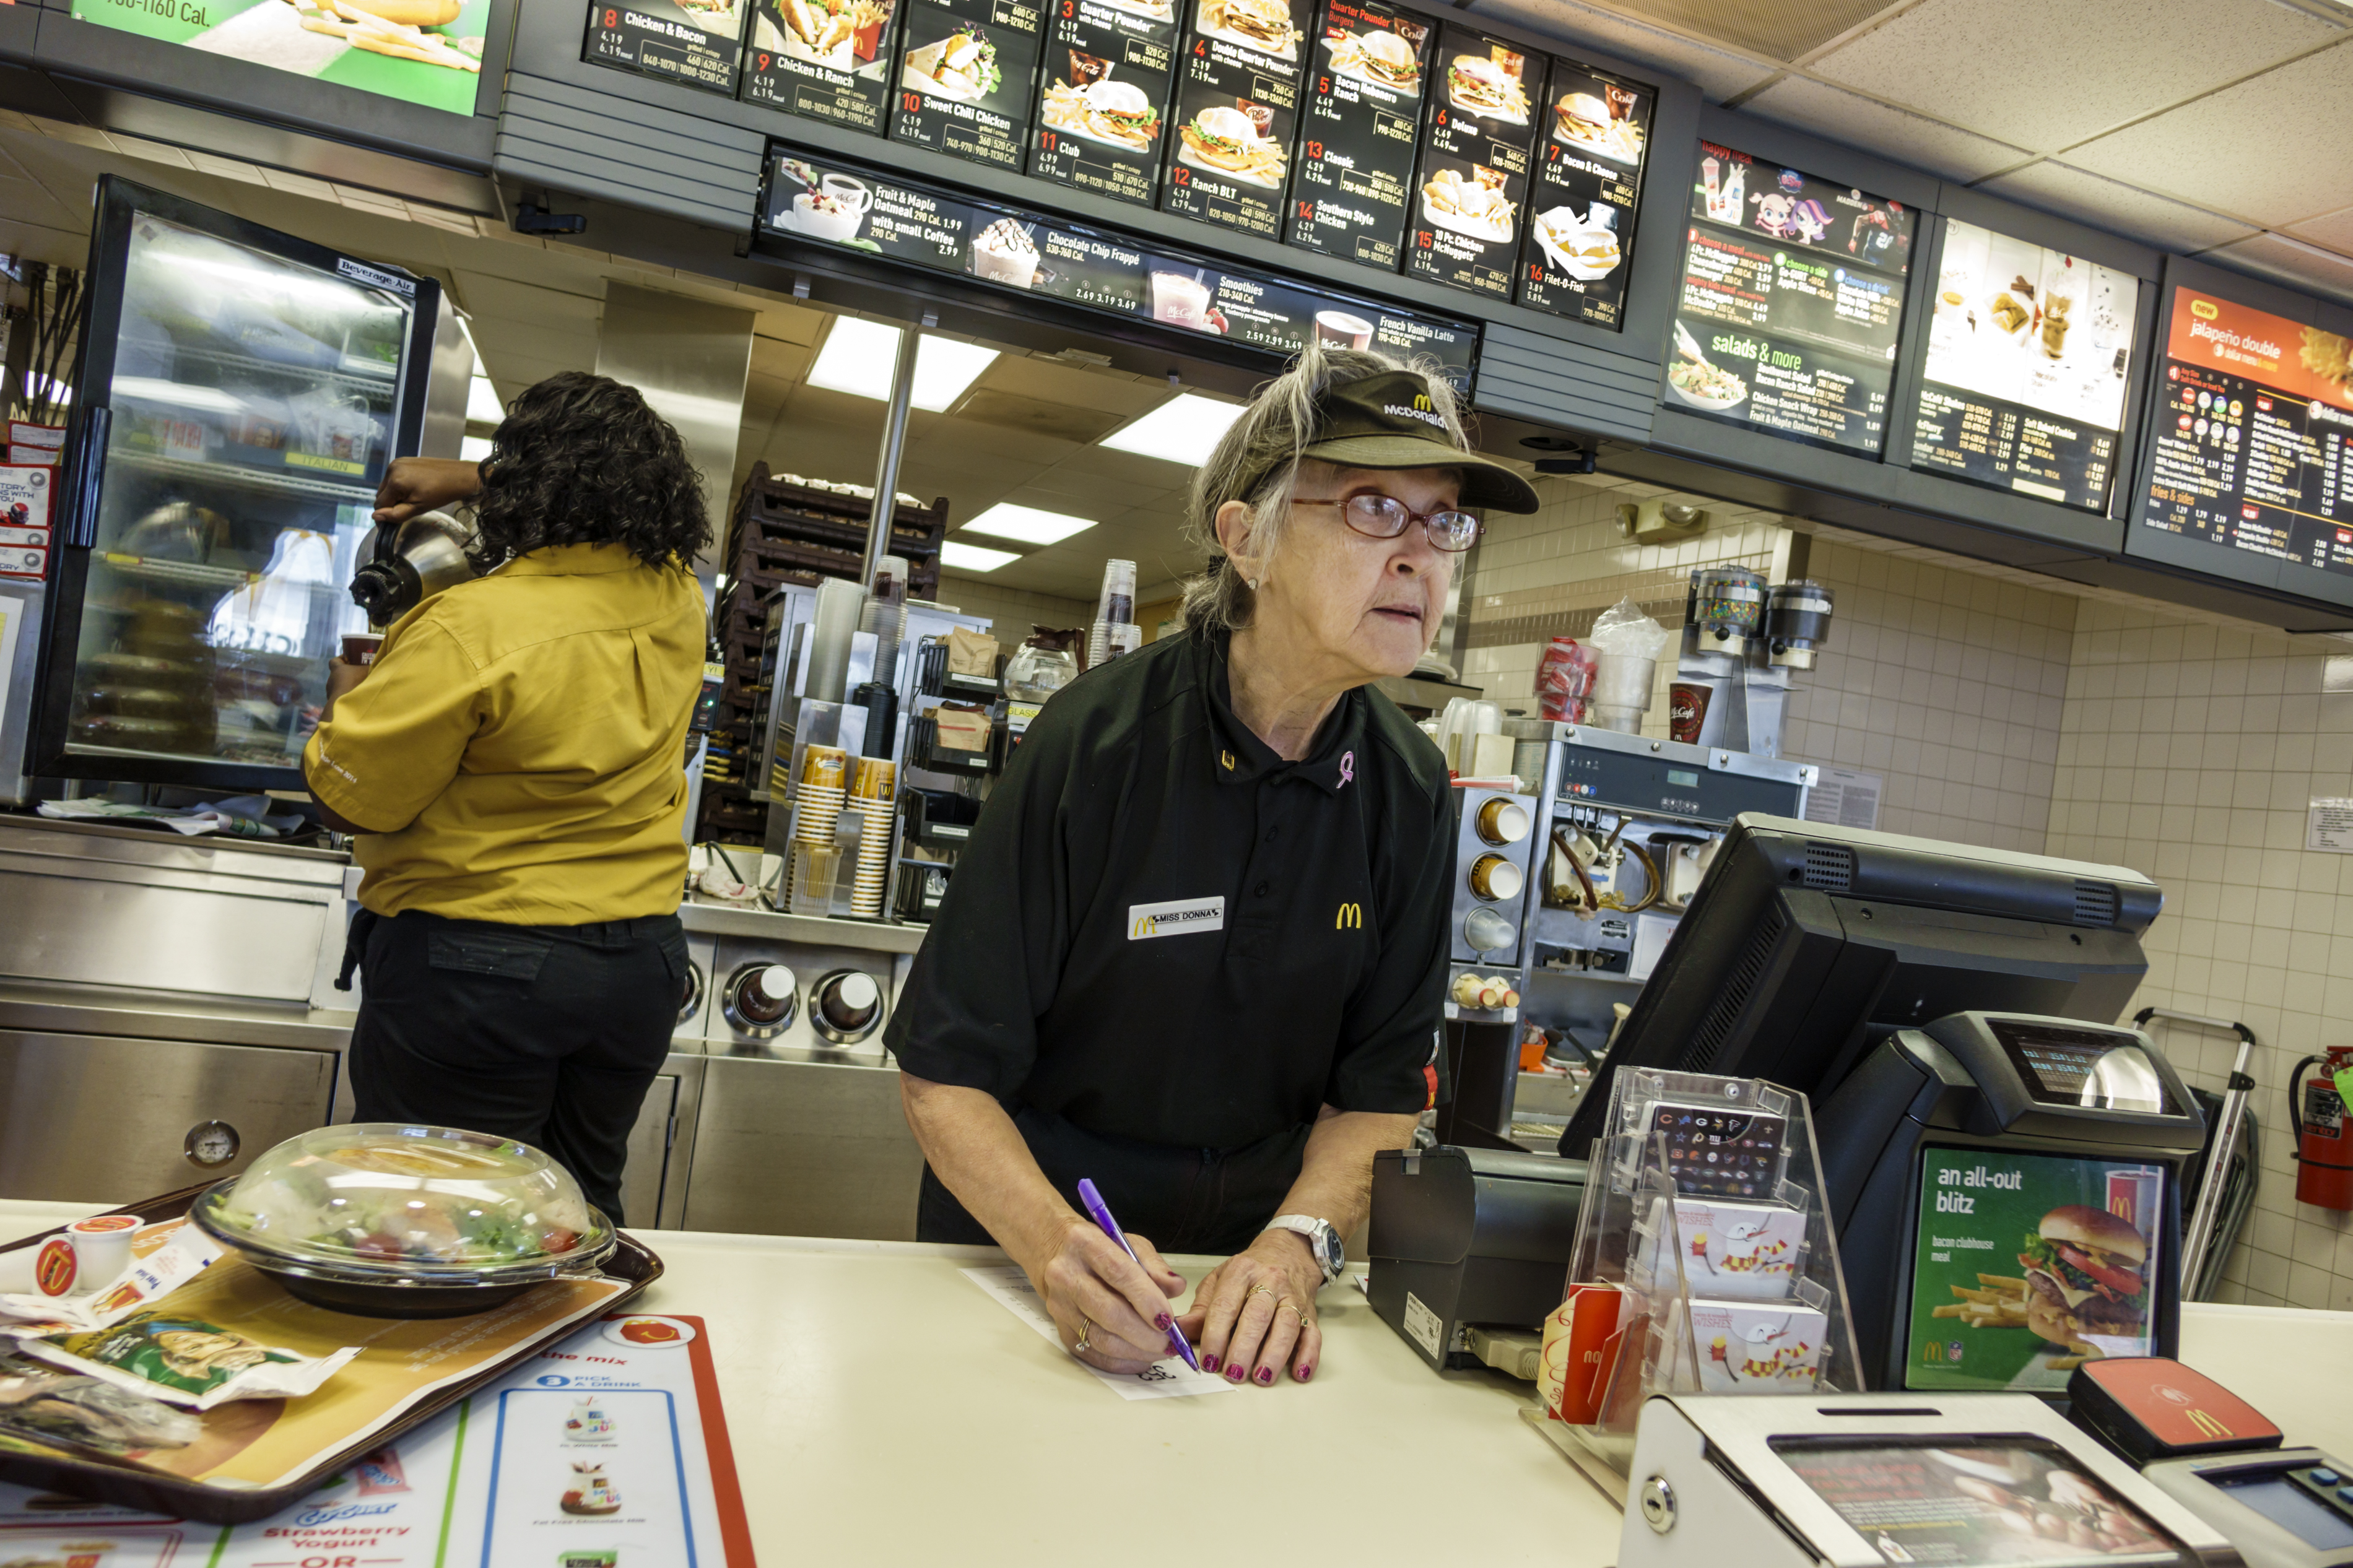 senior woman working at mcdonalds